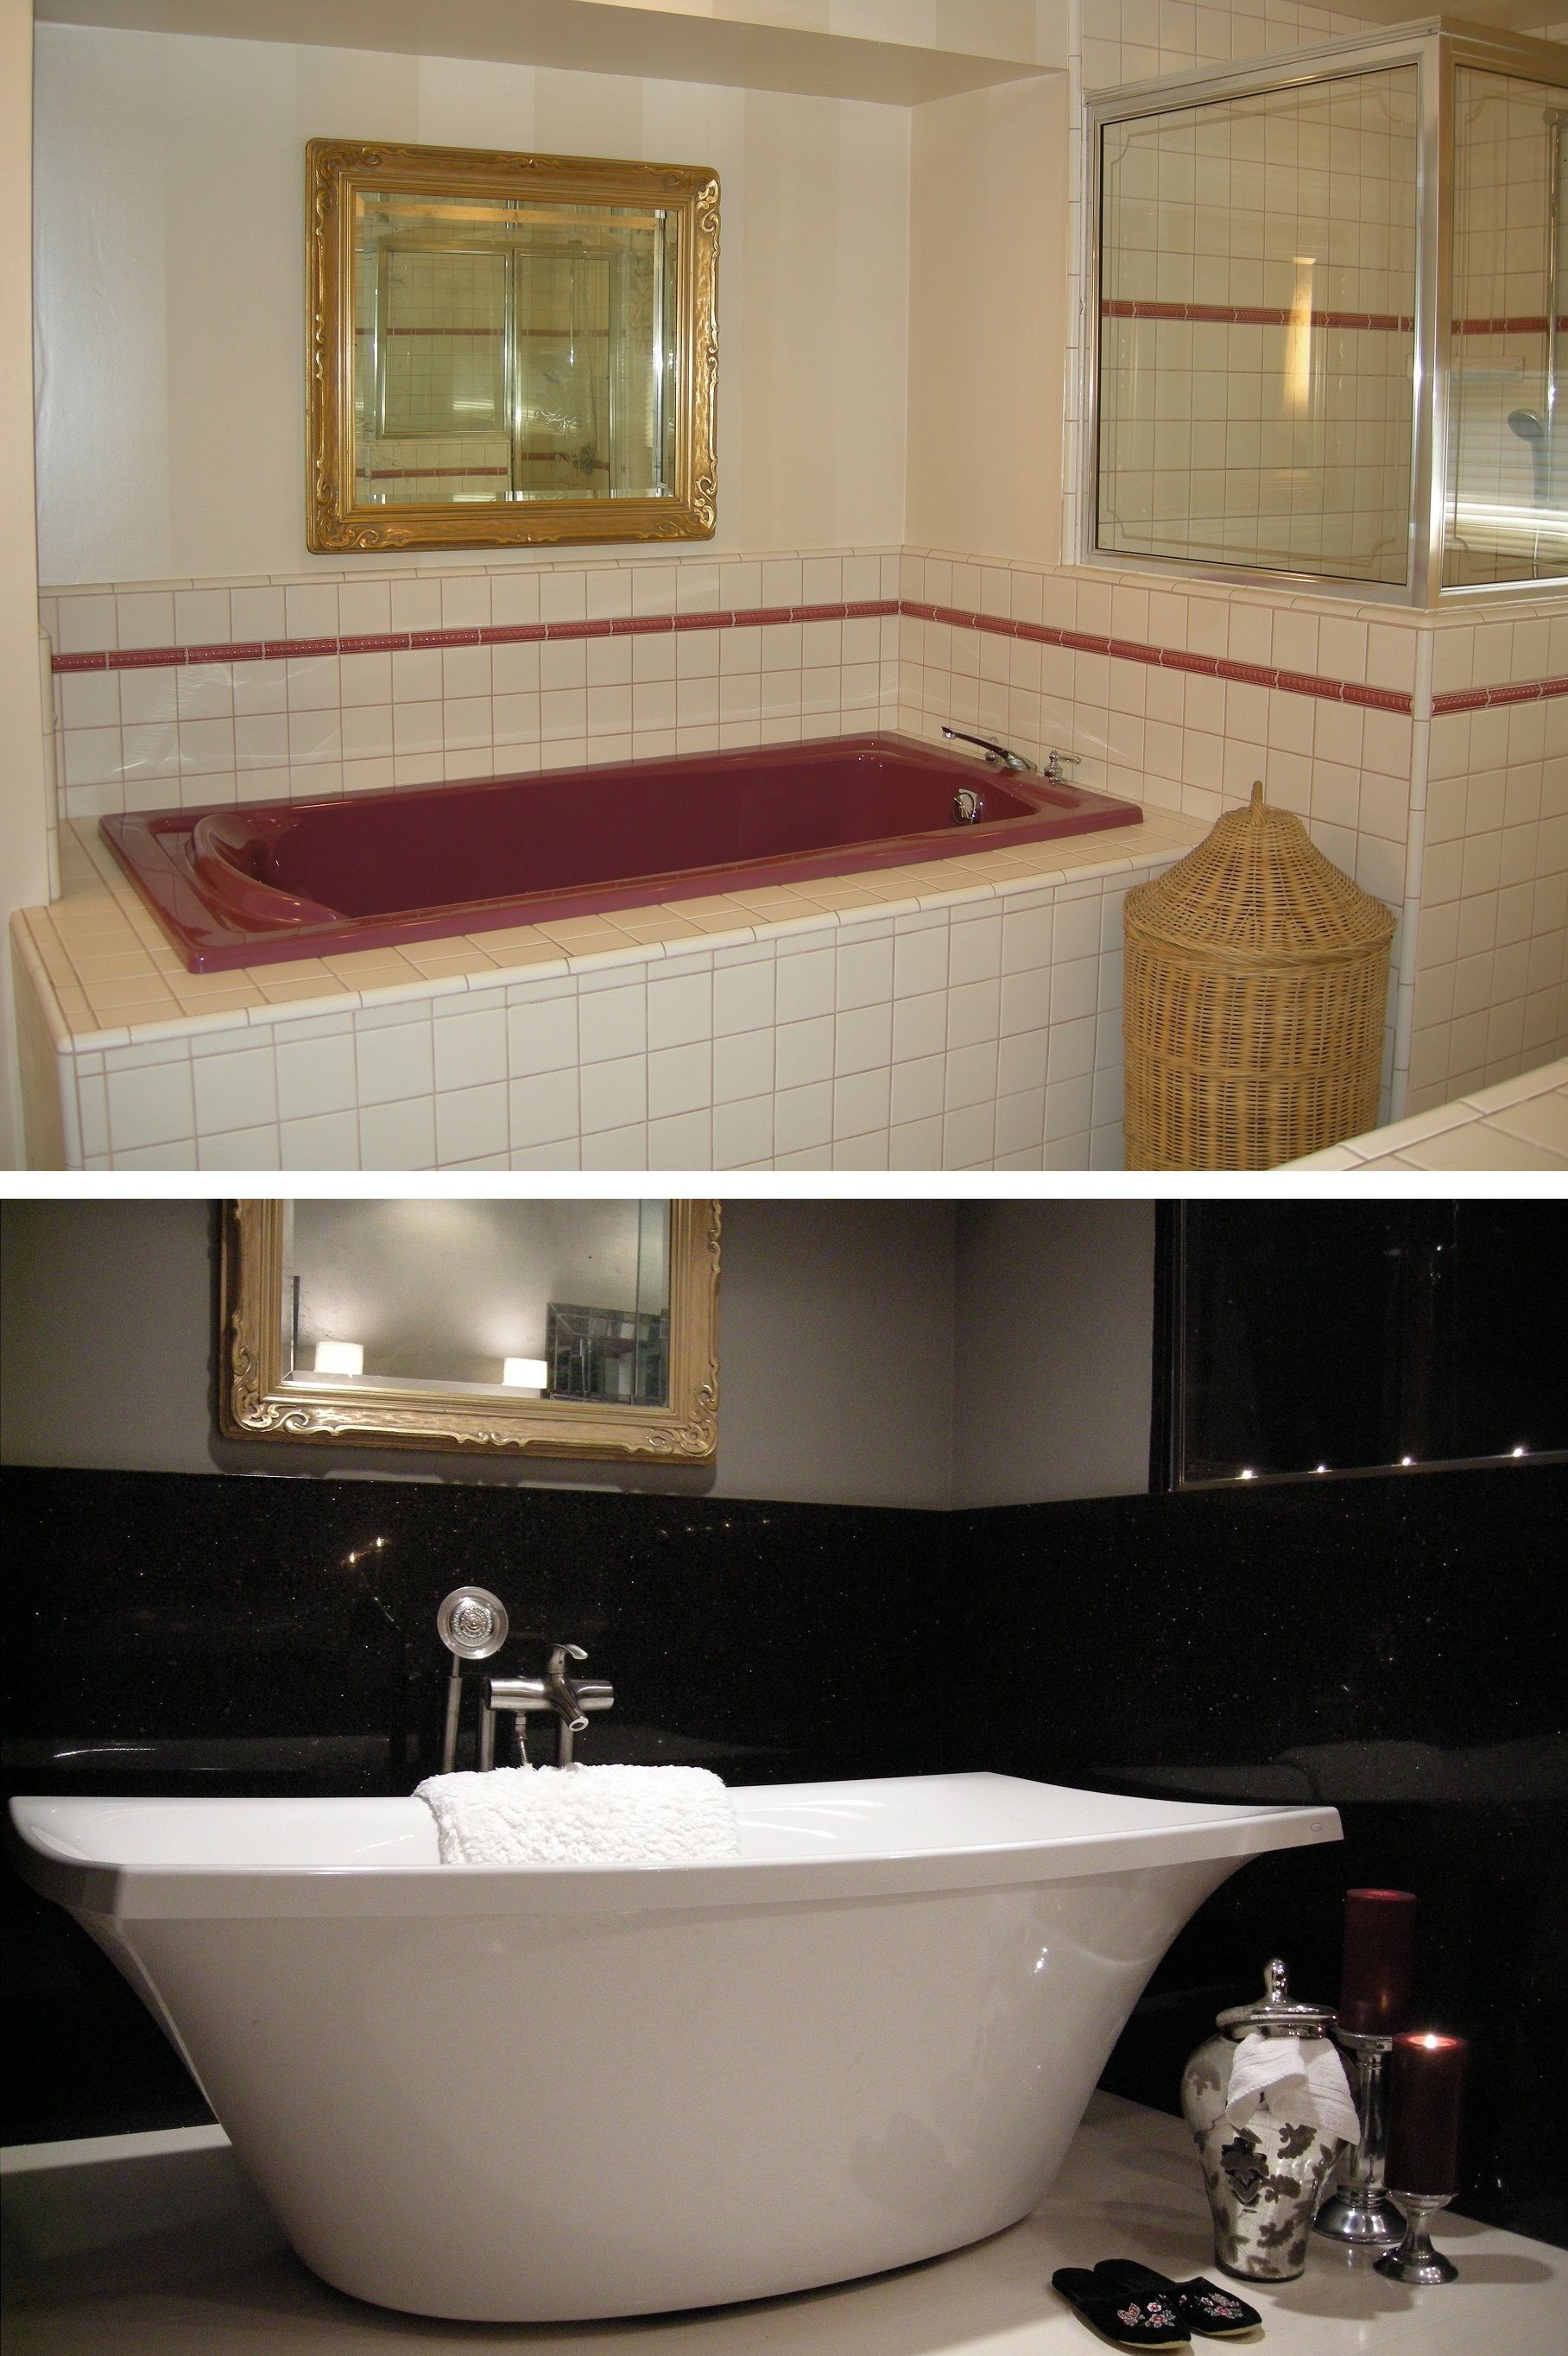 Bathroom Makeover Granite bathroom #bathtub #remodel before and aftergranite